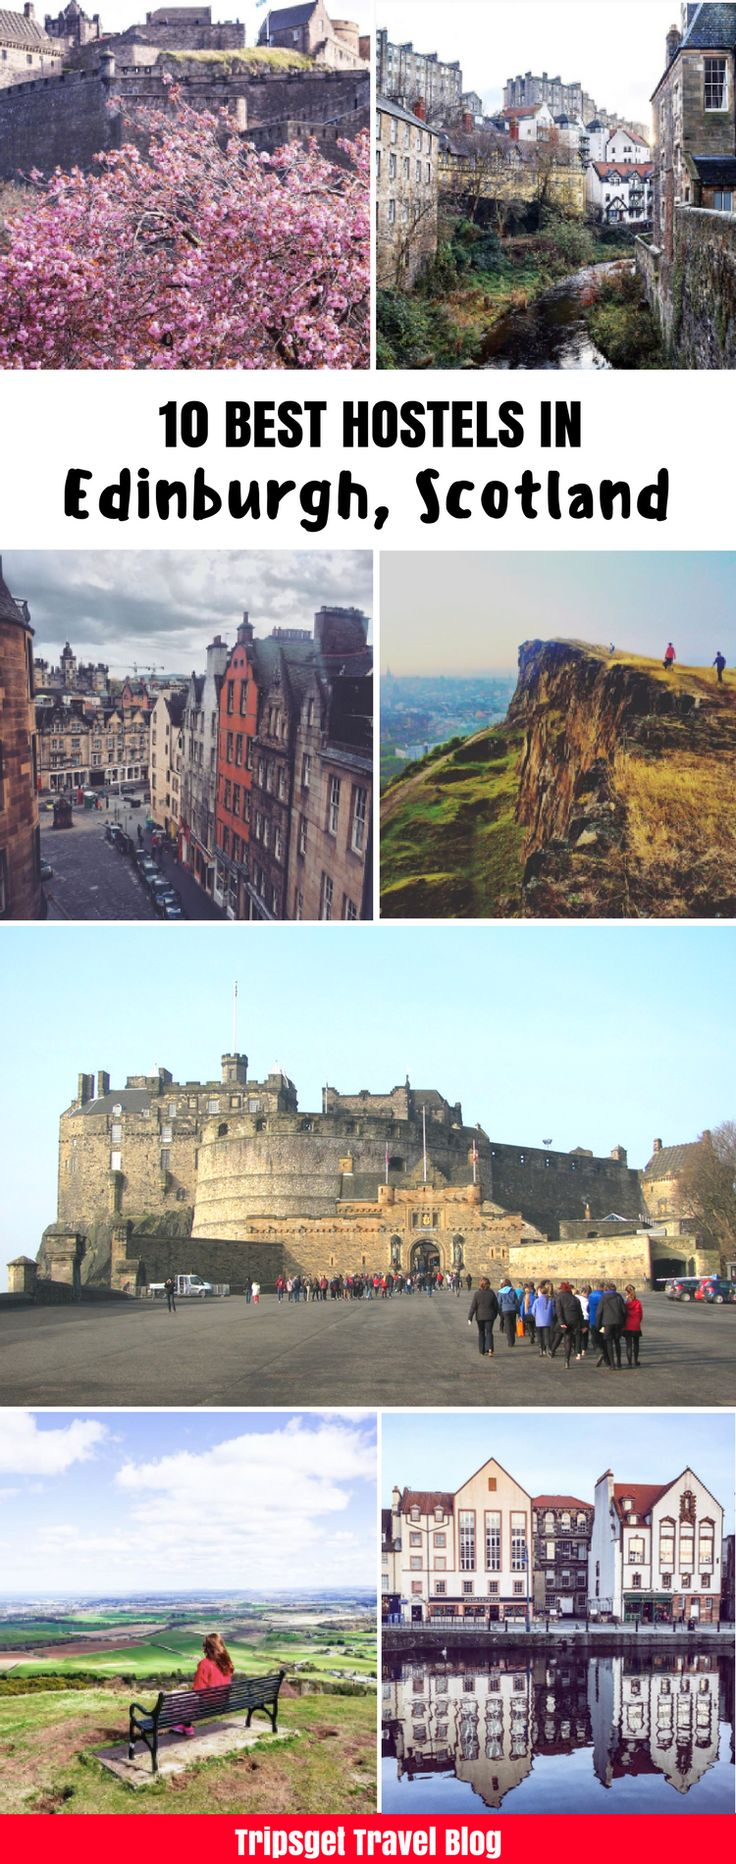 10 best hostels in Edinburgh, Scotland | Edinburgh, Scotland | Accomodation in Scotland. Edinburgh Festivals. Where to stay in Edinburgh